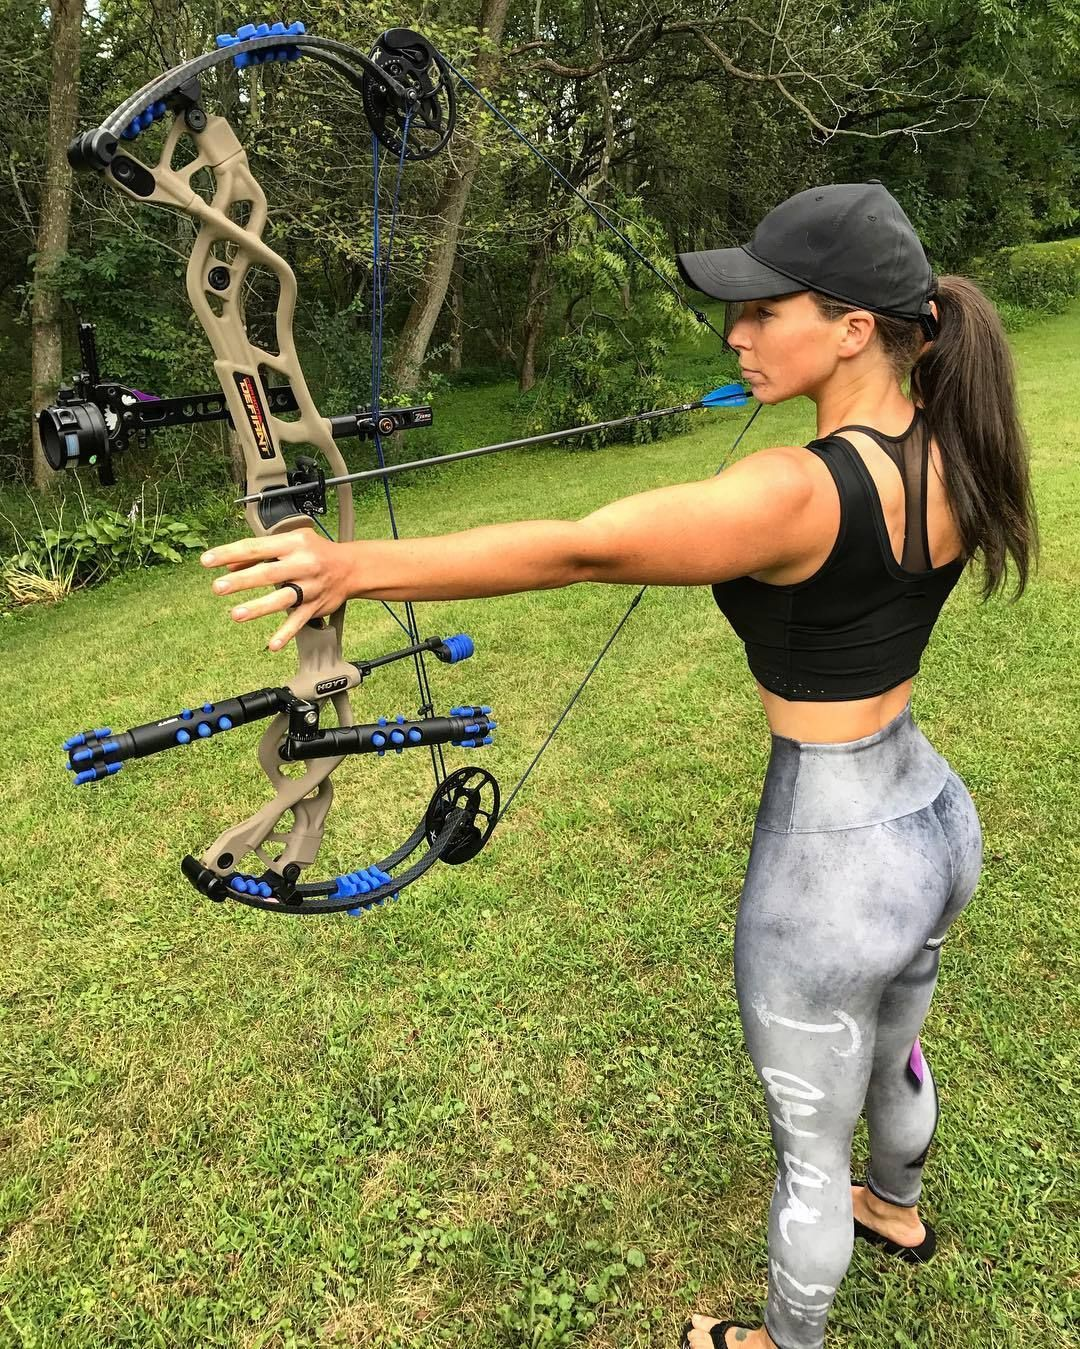 Hot chicks shooting bow and arrow